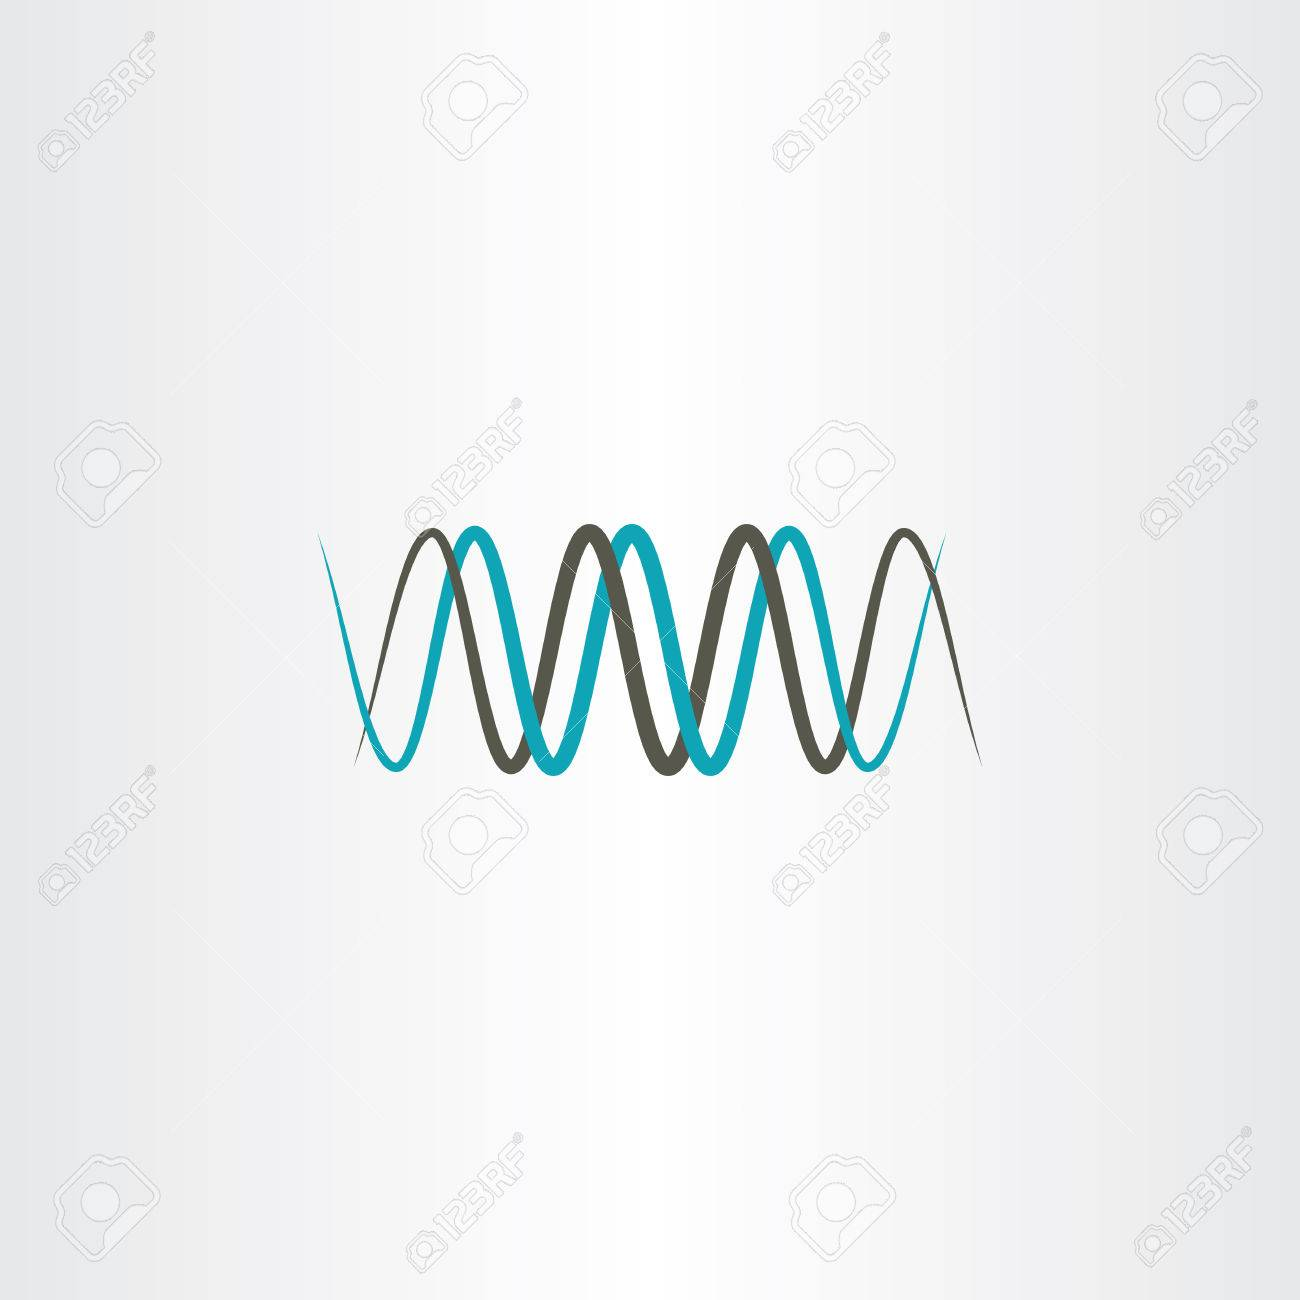 Frequency Wavelength Logo Vector Royalty Free Cliparts Vectors And